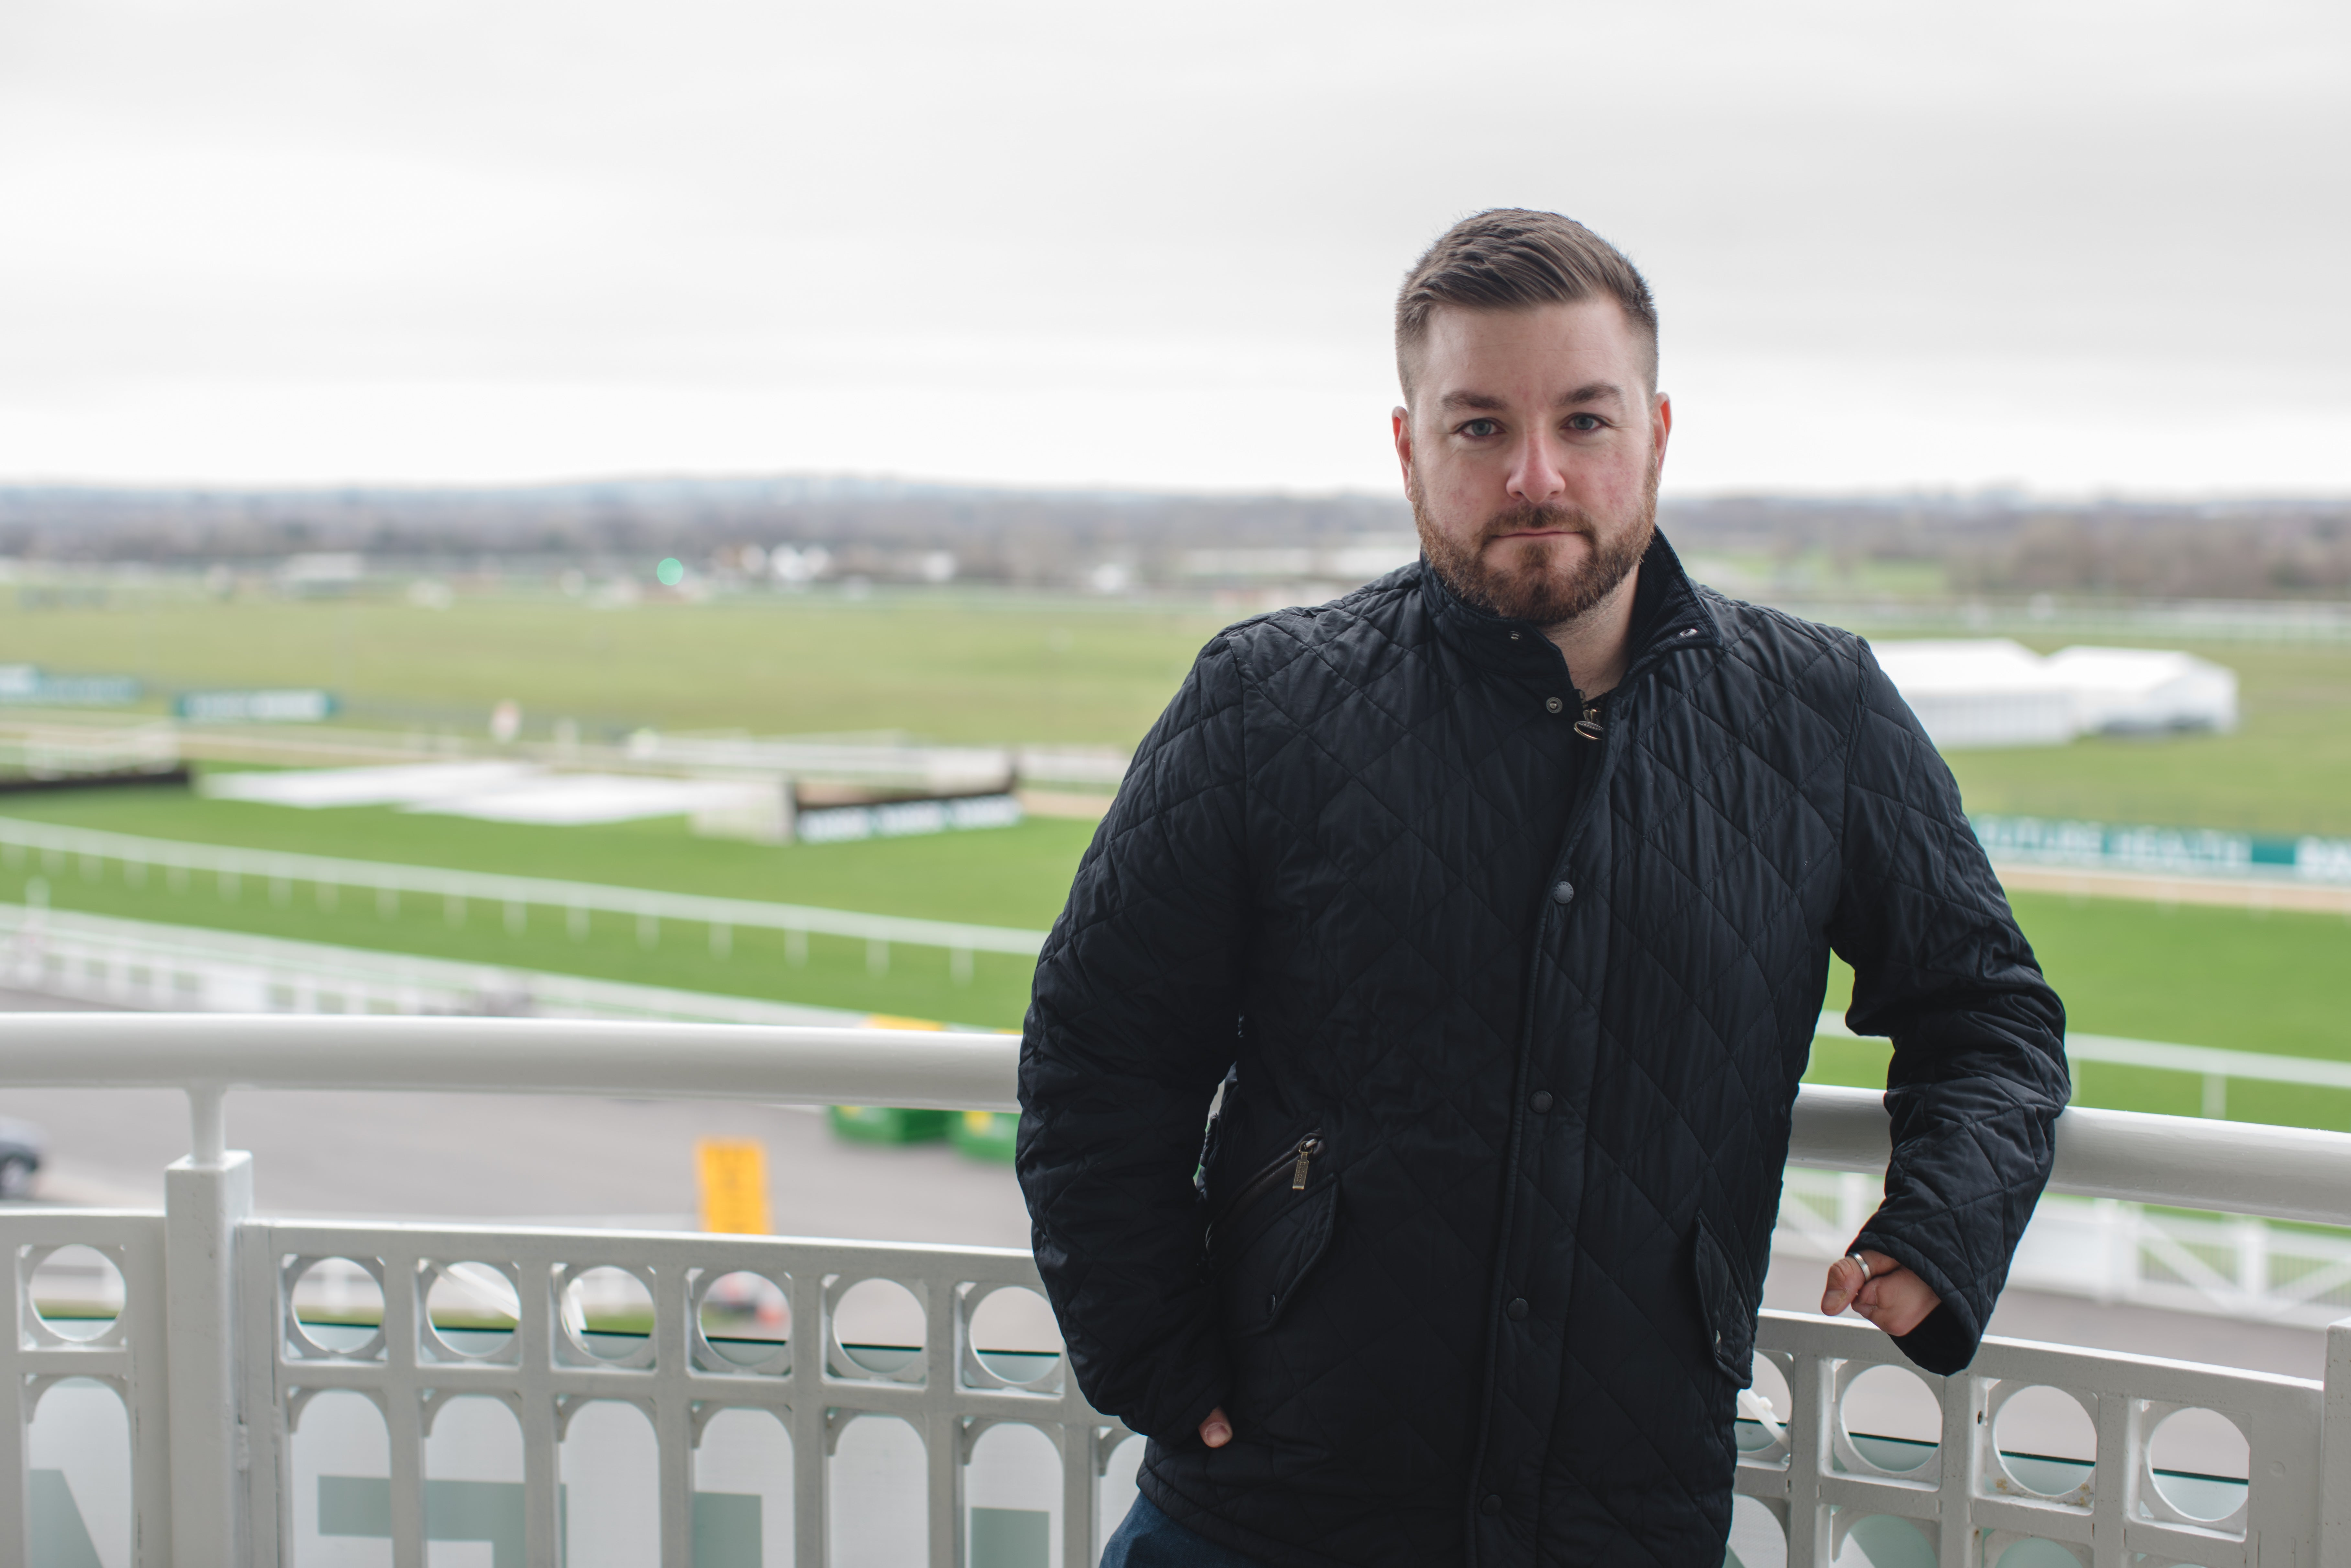 Alex Brooker presenting the NHS: A People's History, a BBC and OU partnership series